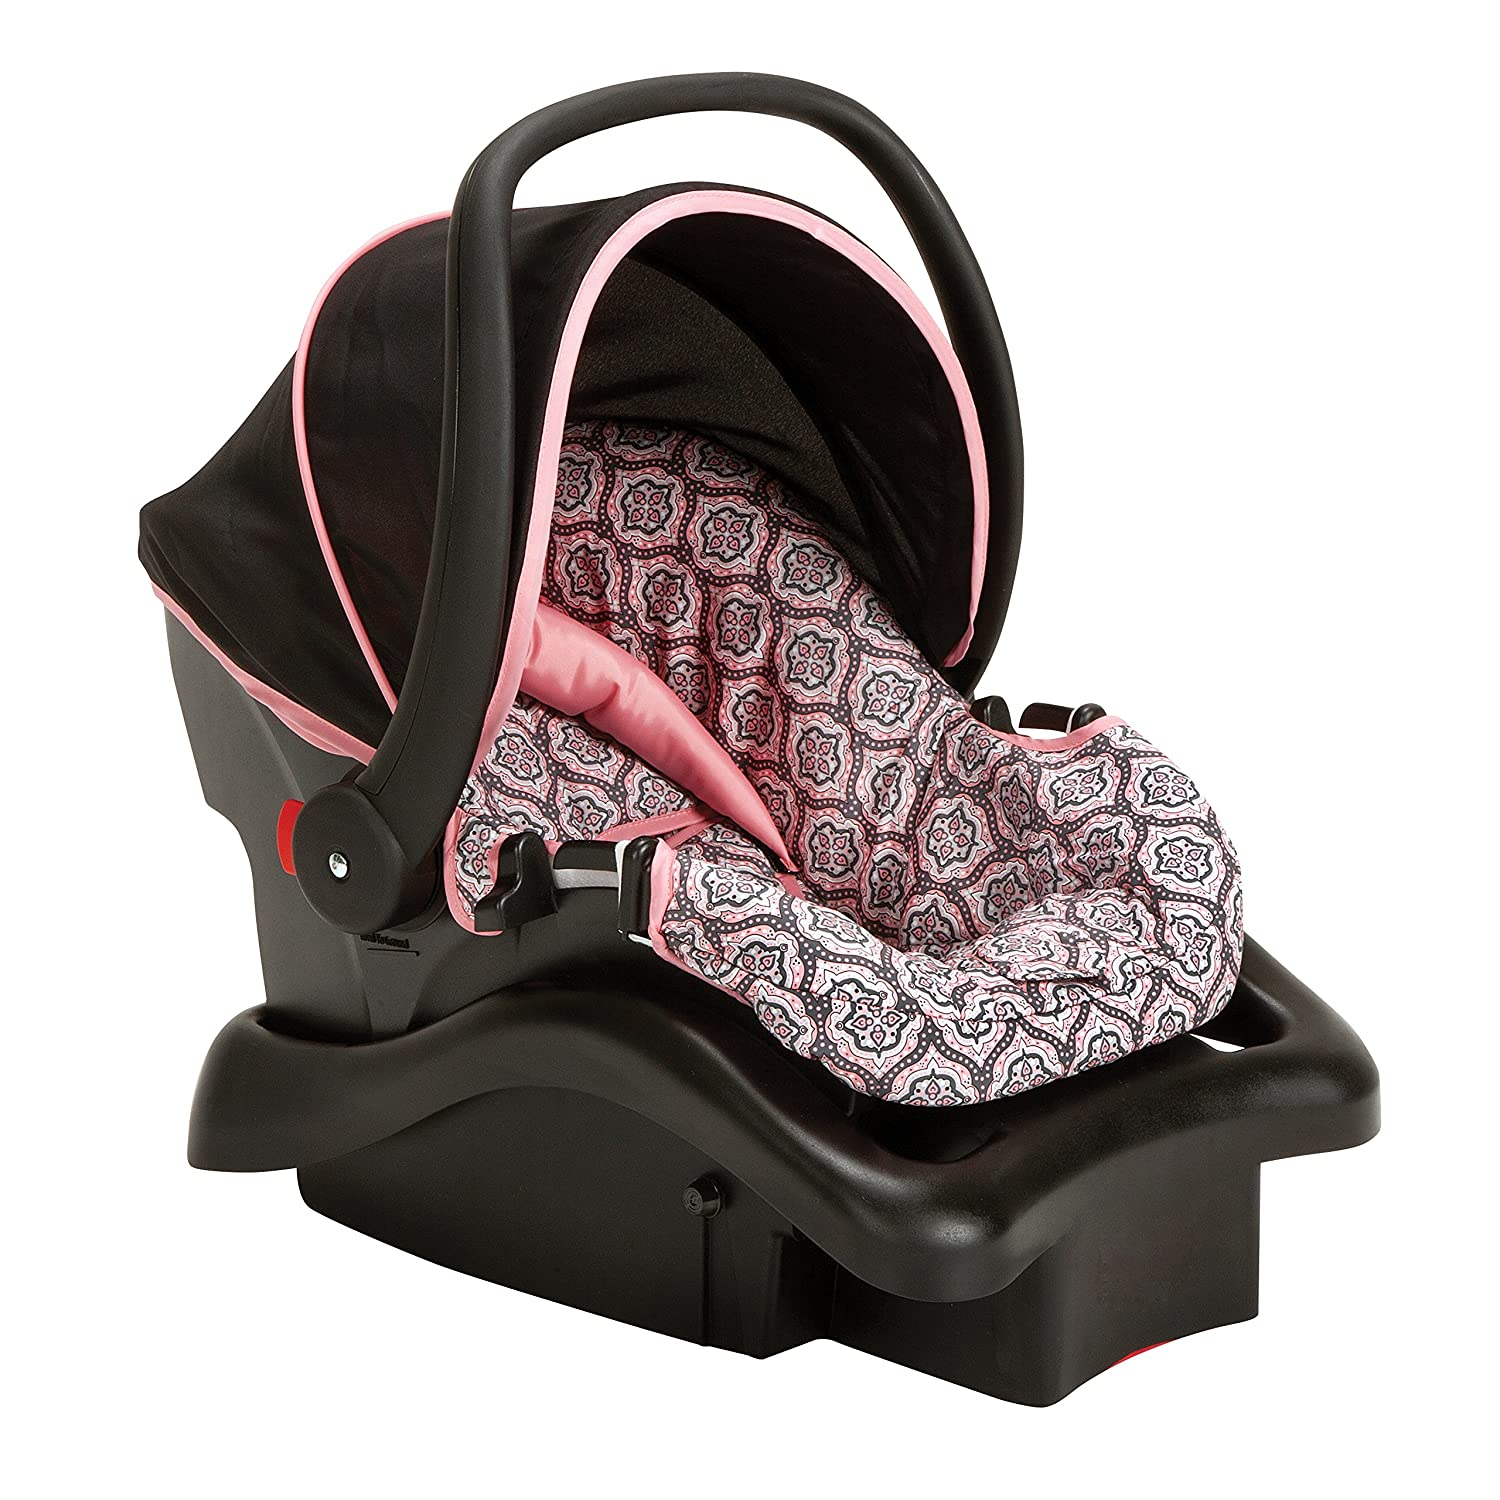 Top 5 Lightweight Car Seats In 2018 Ideal For Travels And Light To